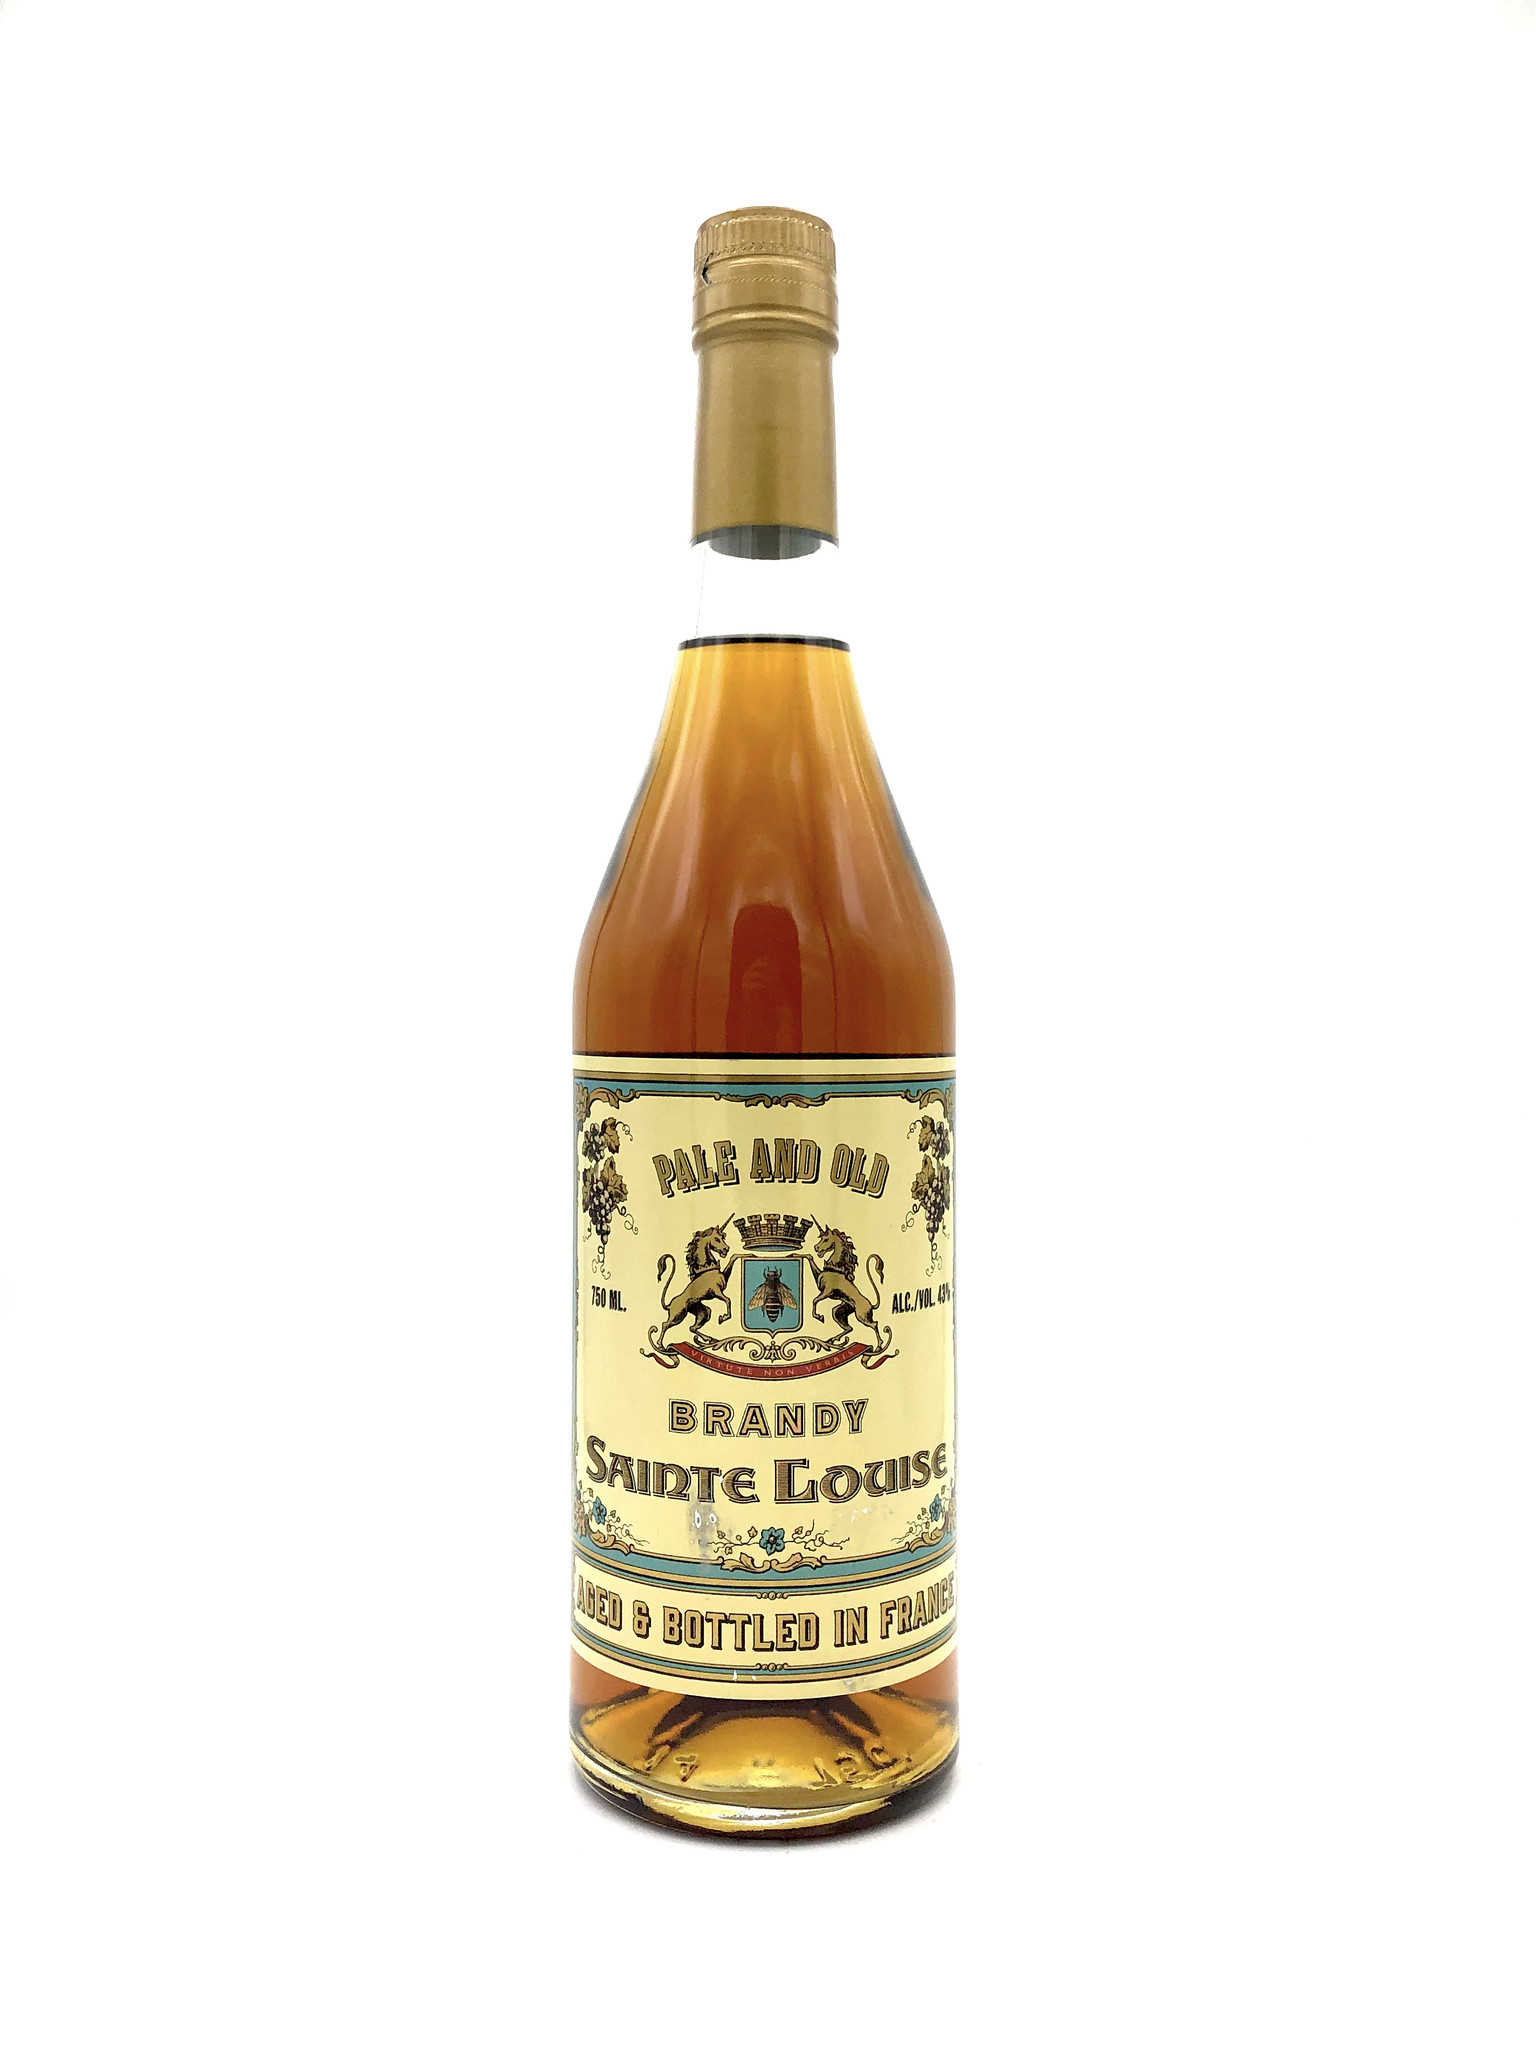 "Brandy ""Pale & Old"" Sainte Louise"